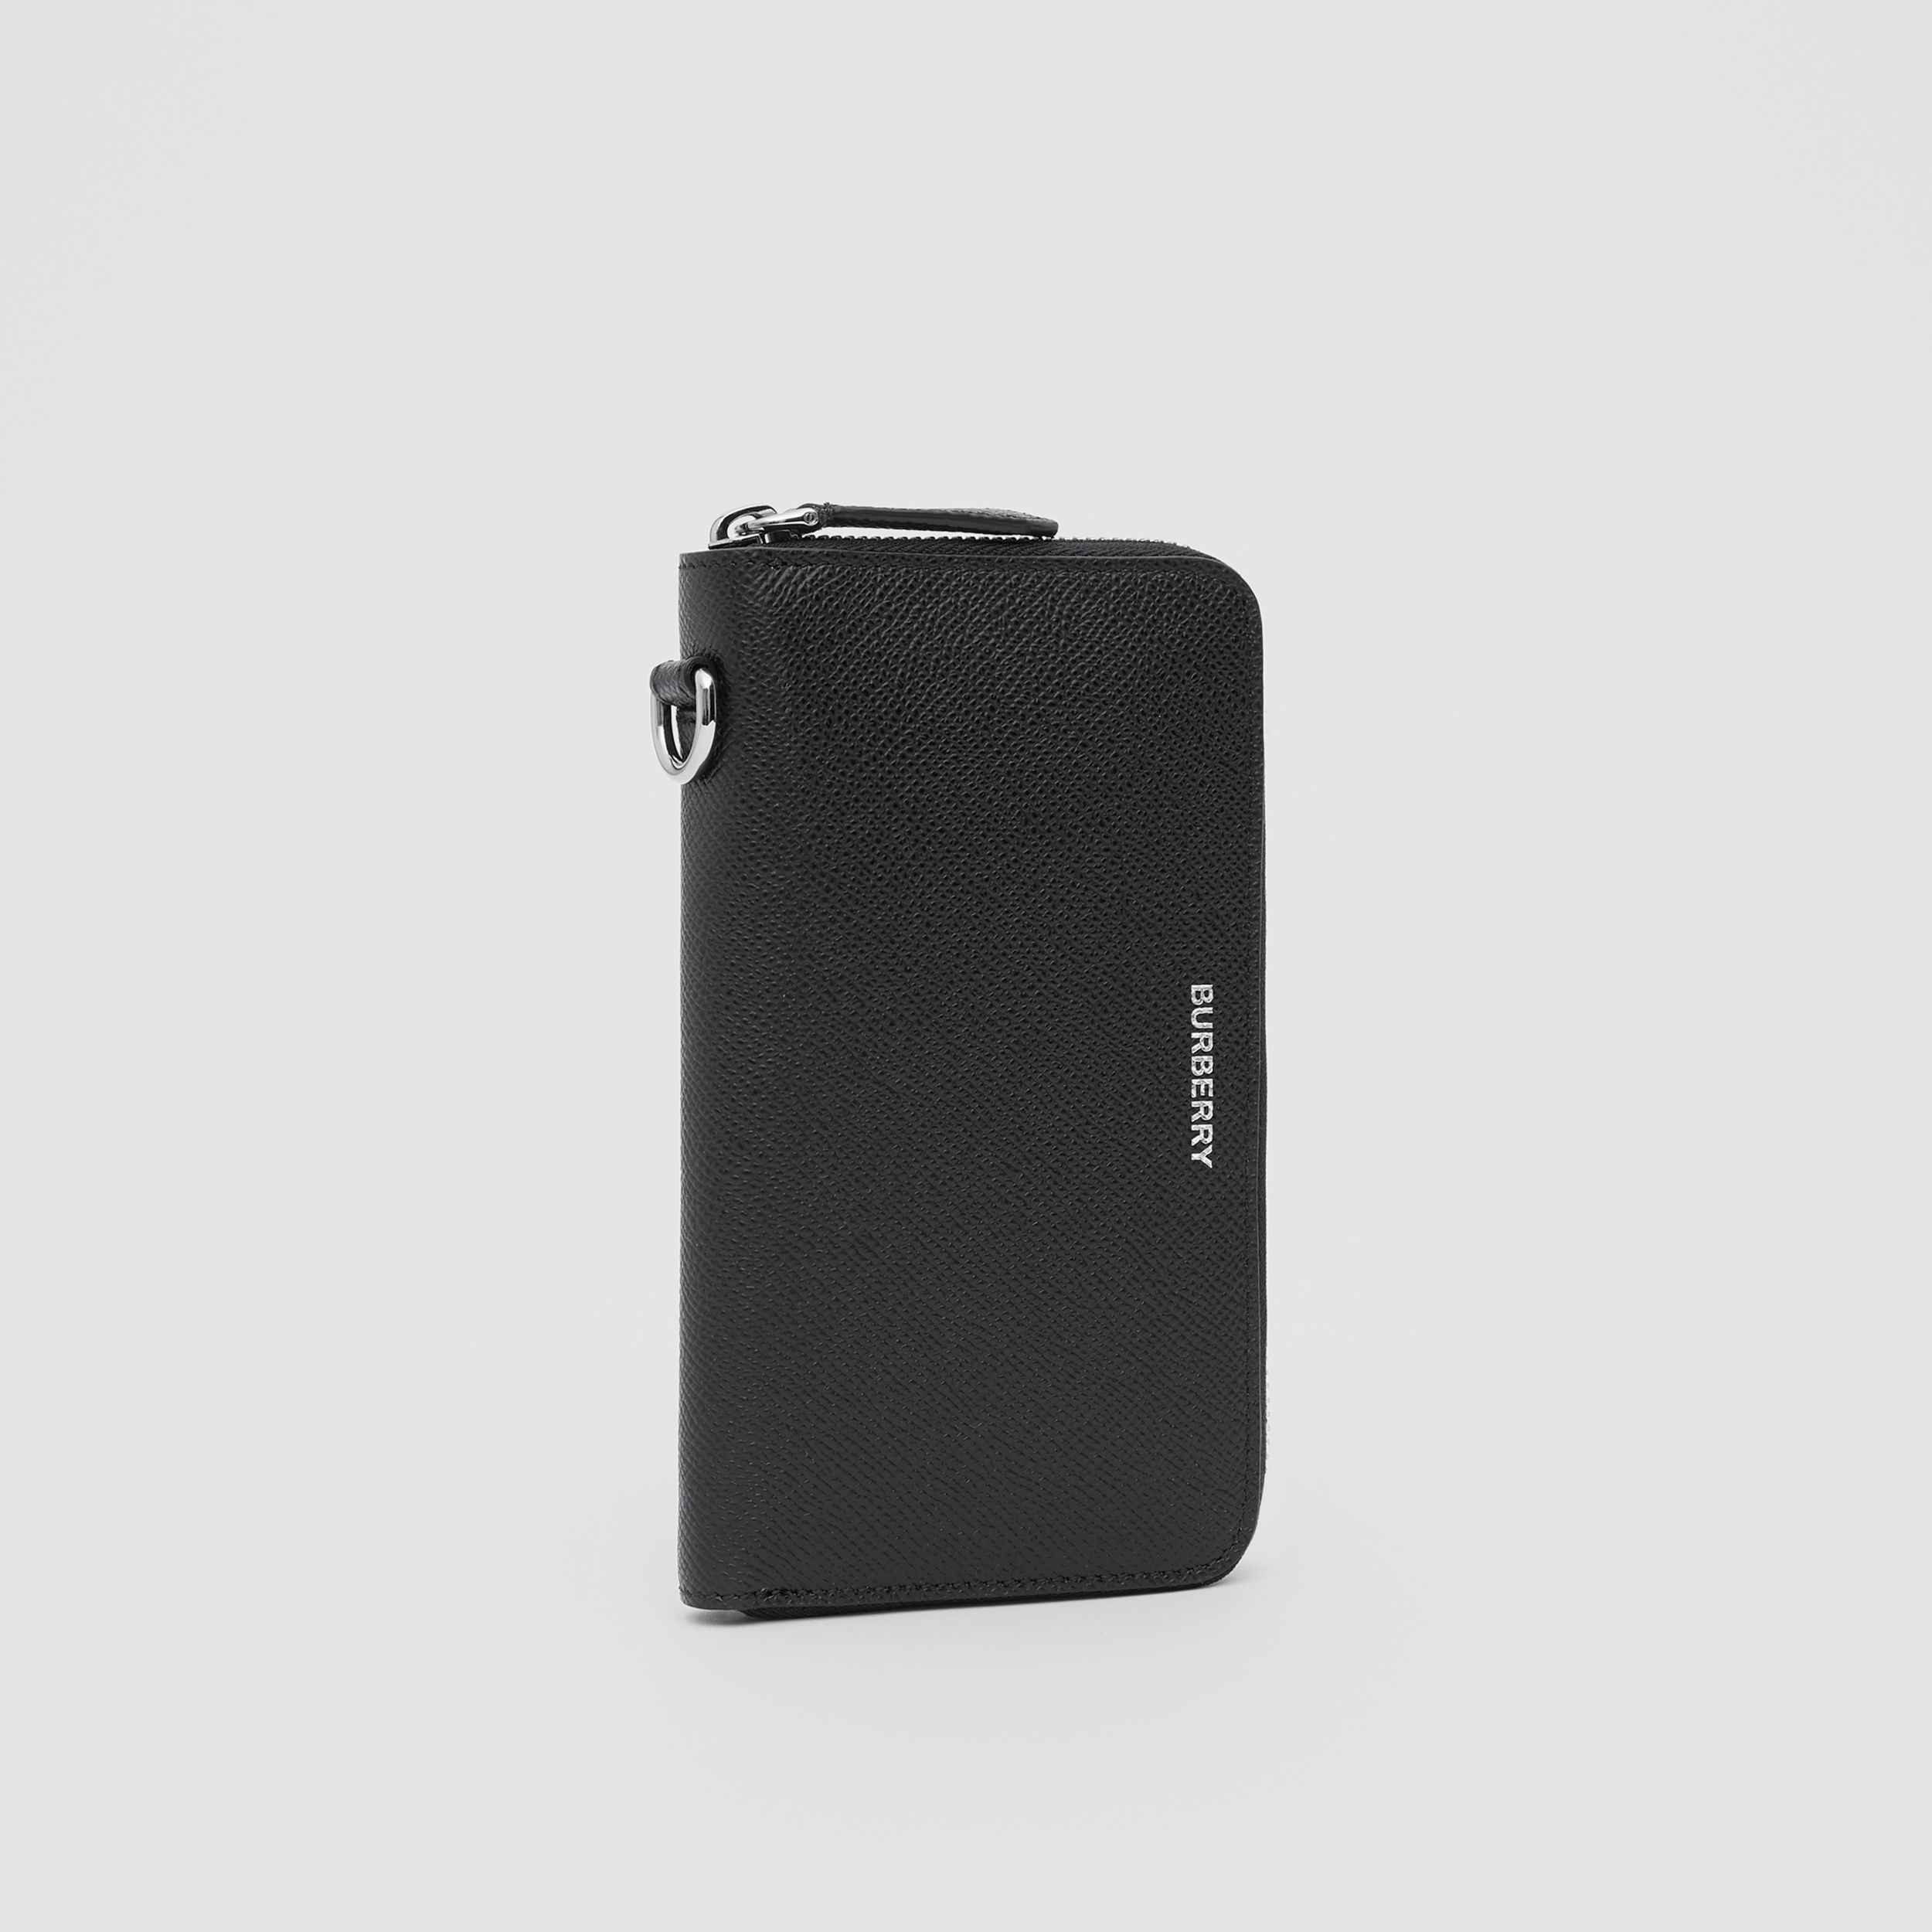 Grainy Leather Phone Wallet in Black - Men | Burberry Hong Kong S.A.R. - 4